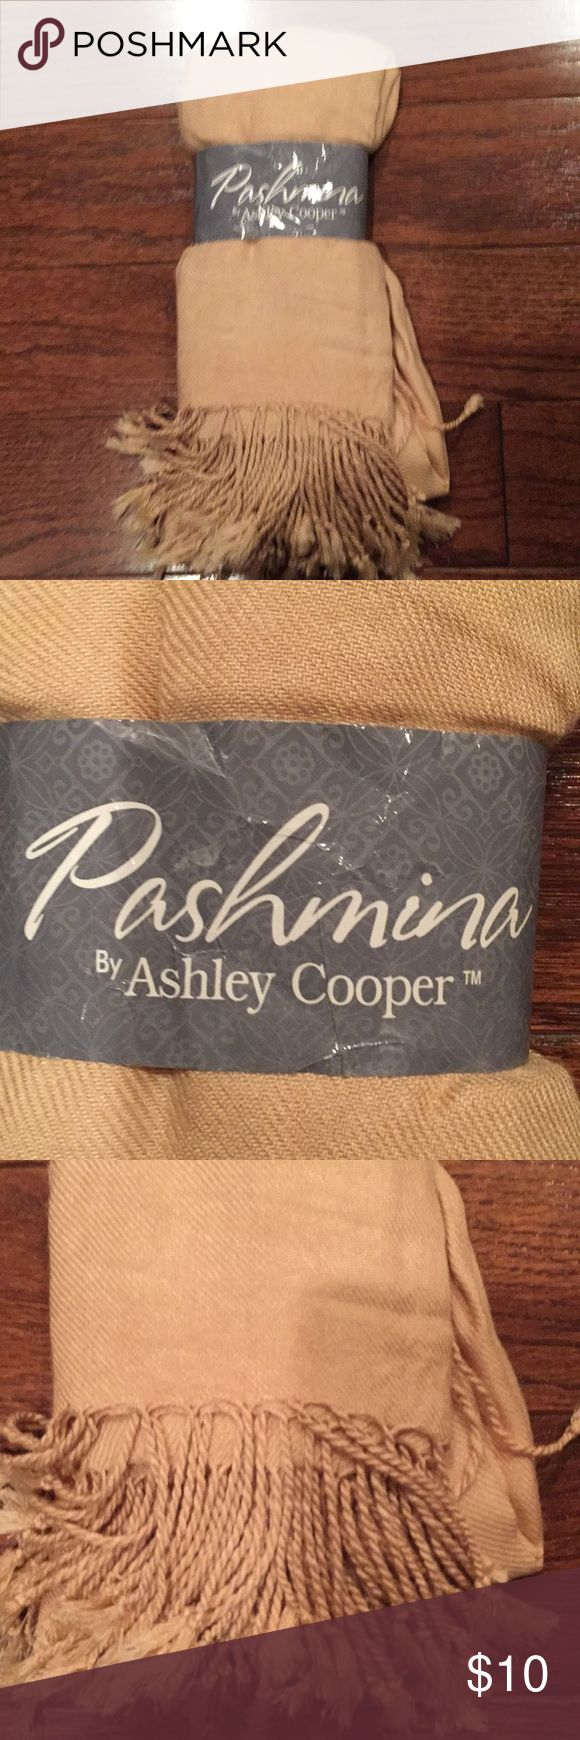 Beige Pashmina New, never been worn. Ashley Cooper Accessories Scarves & Wraps